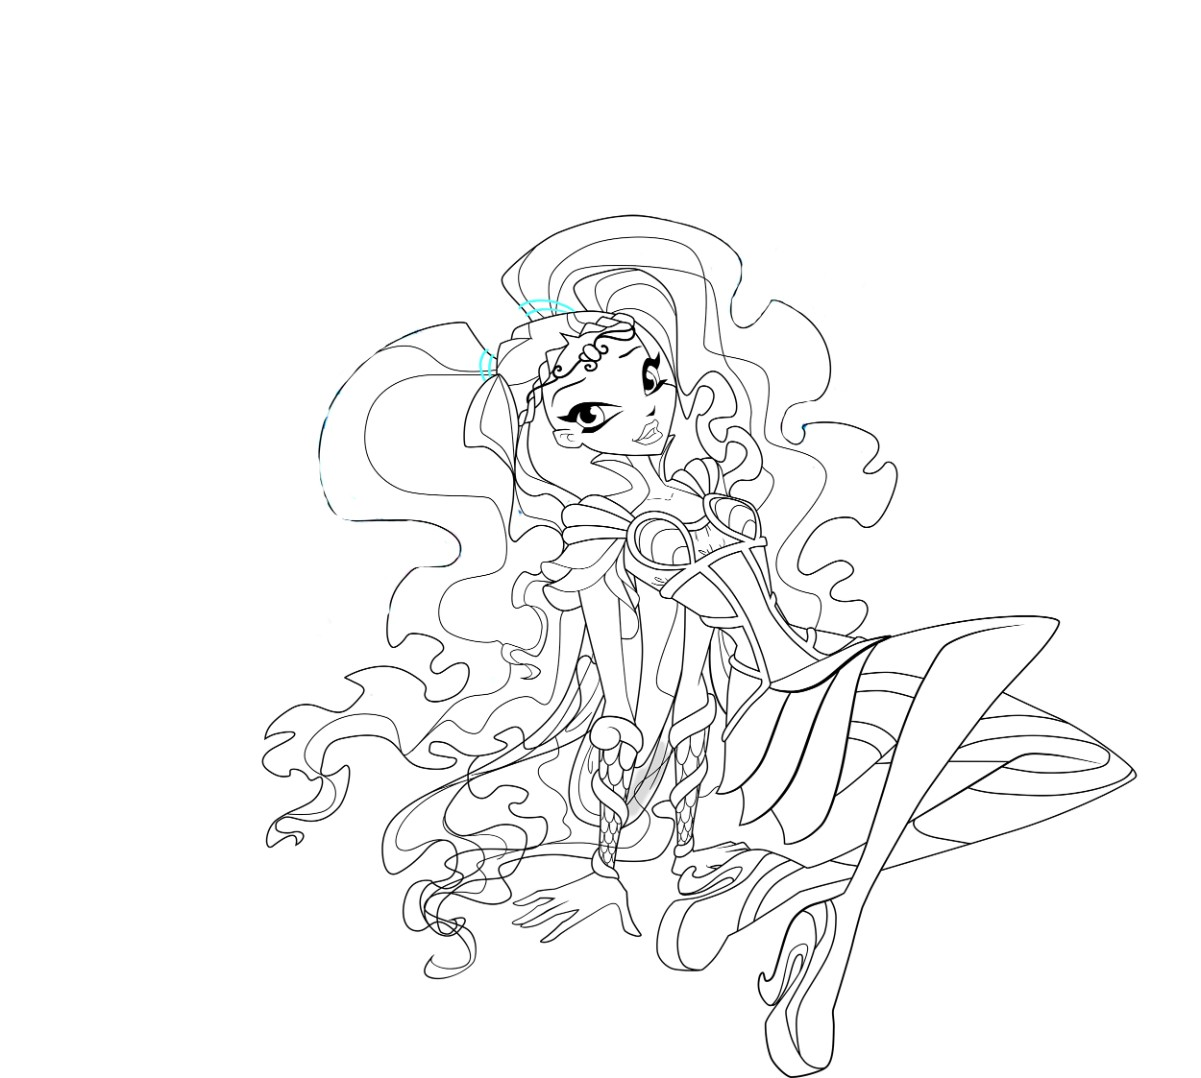 winx club bloomix coloring pages bloom | Winx Club Bloomix coloring pages